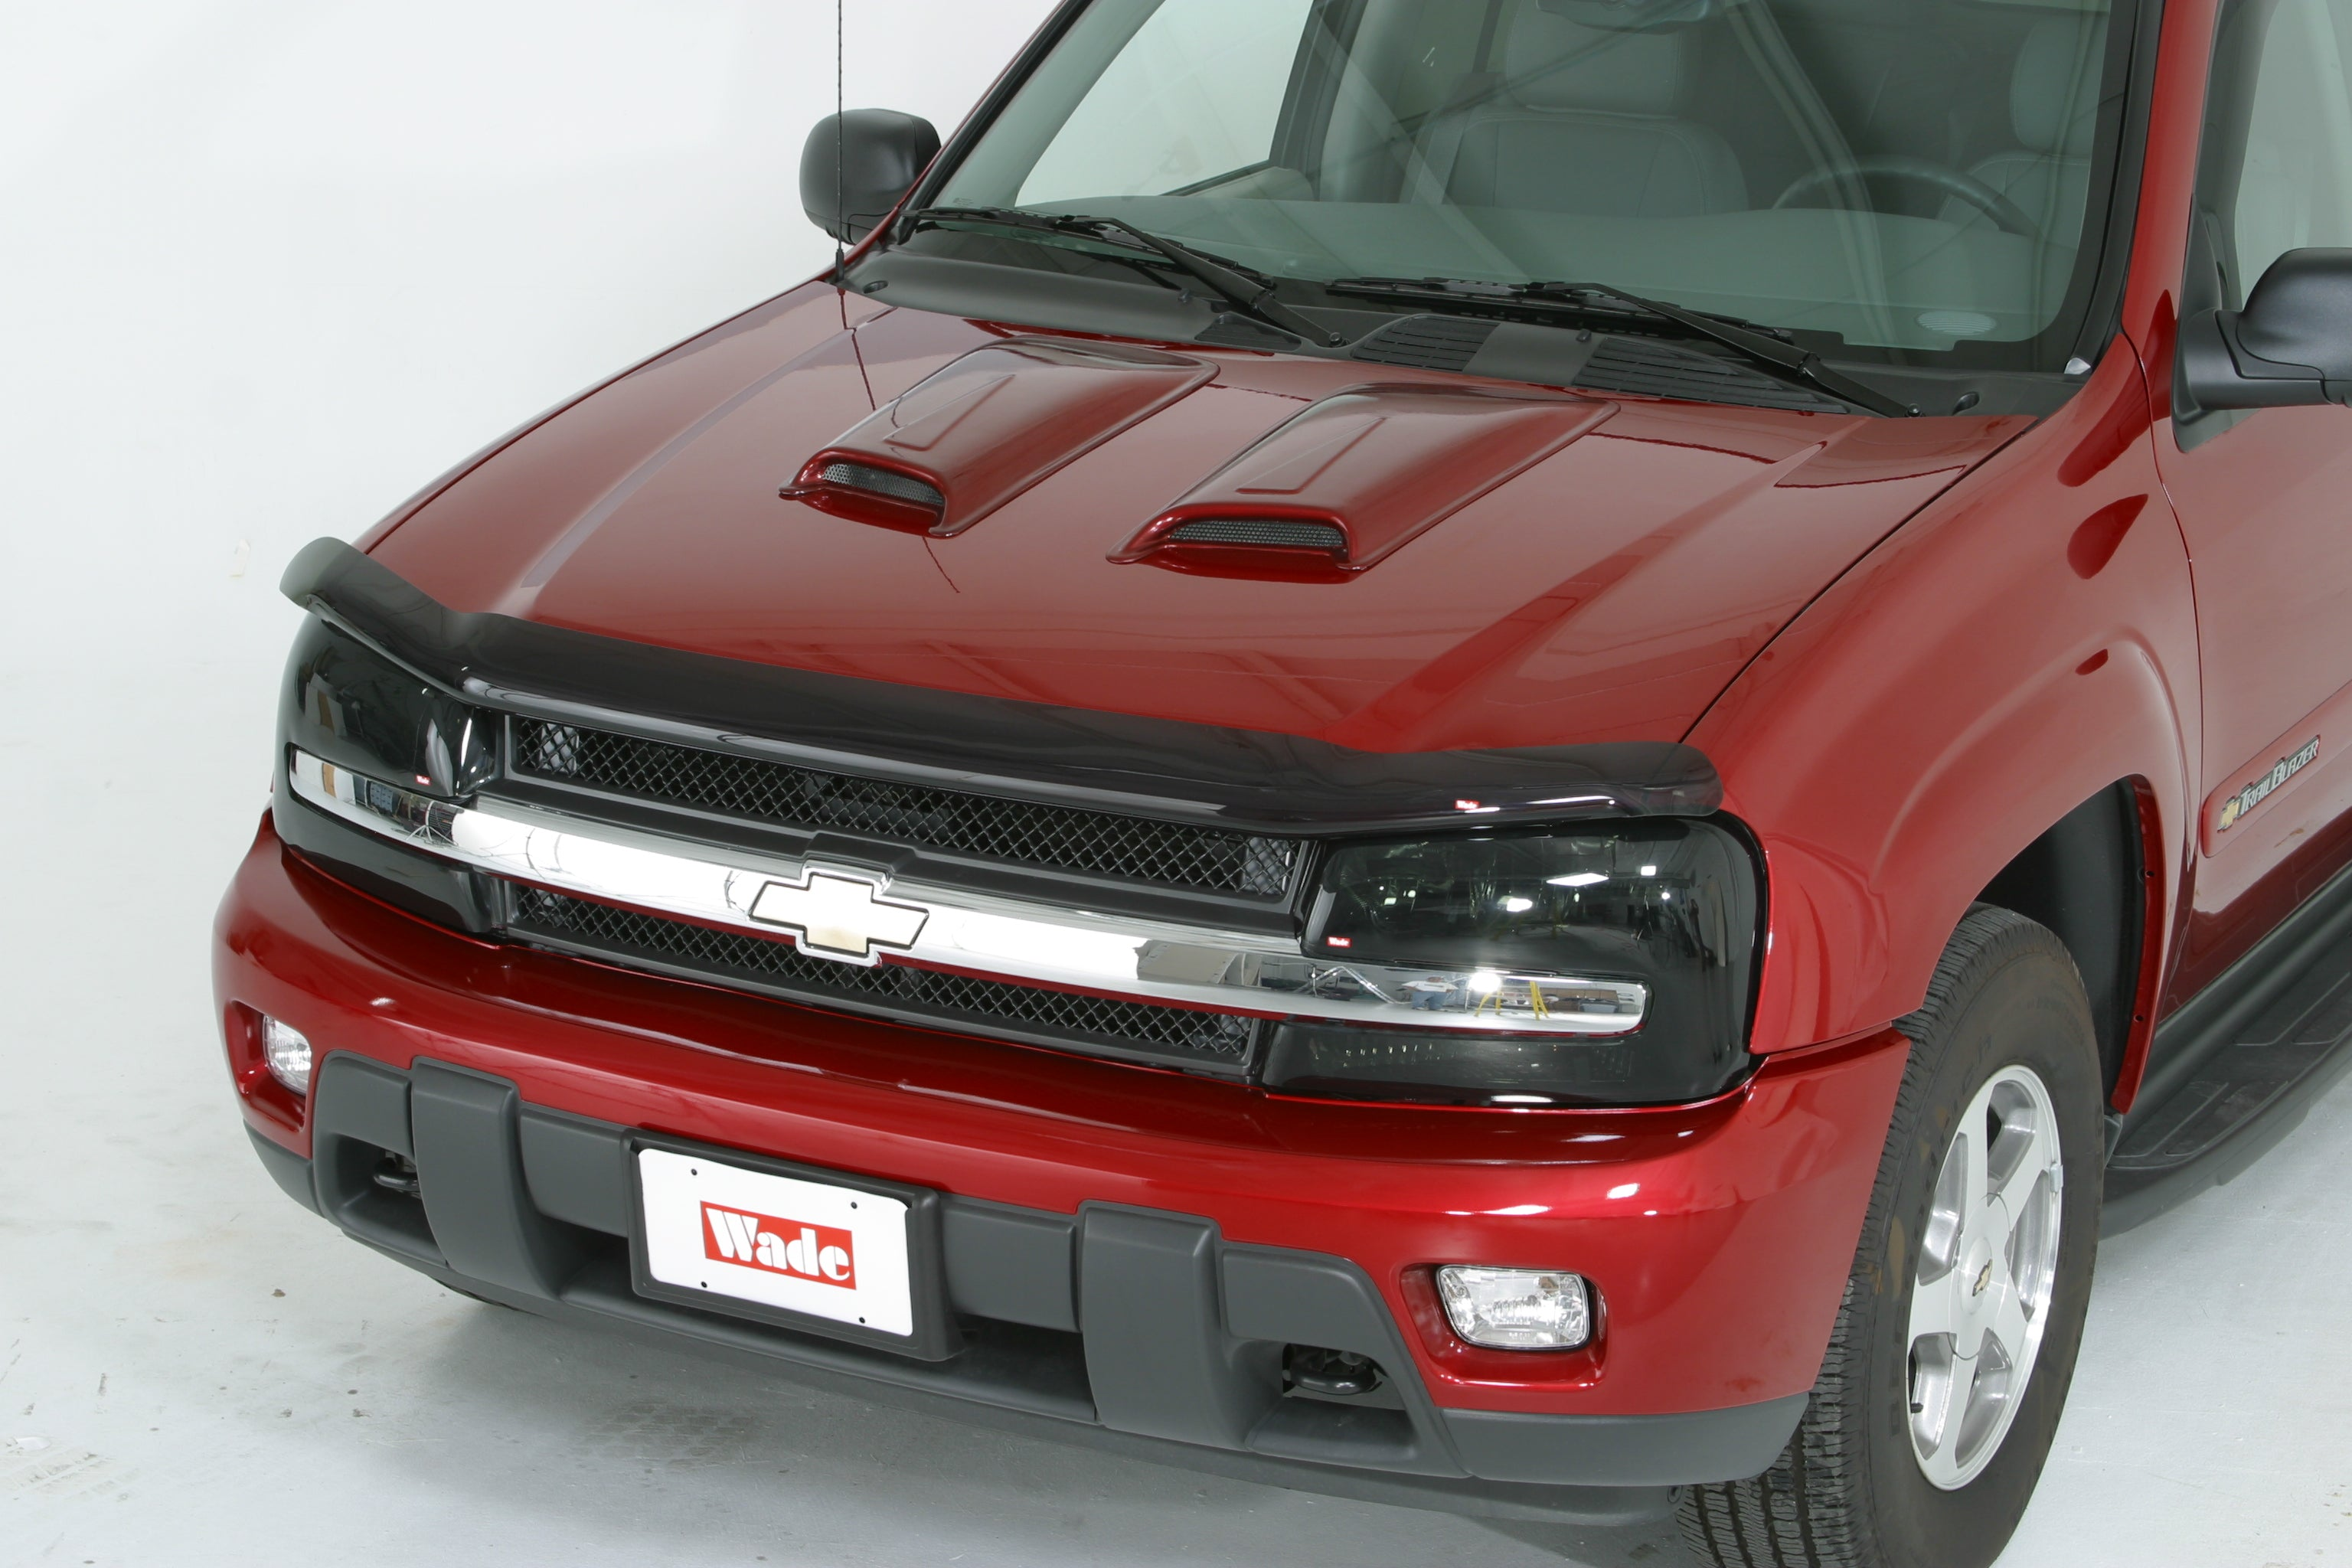 1996 Nissan Pickup 4WD (recessed light) Head Light Covers